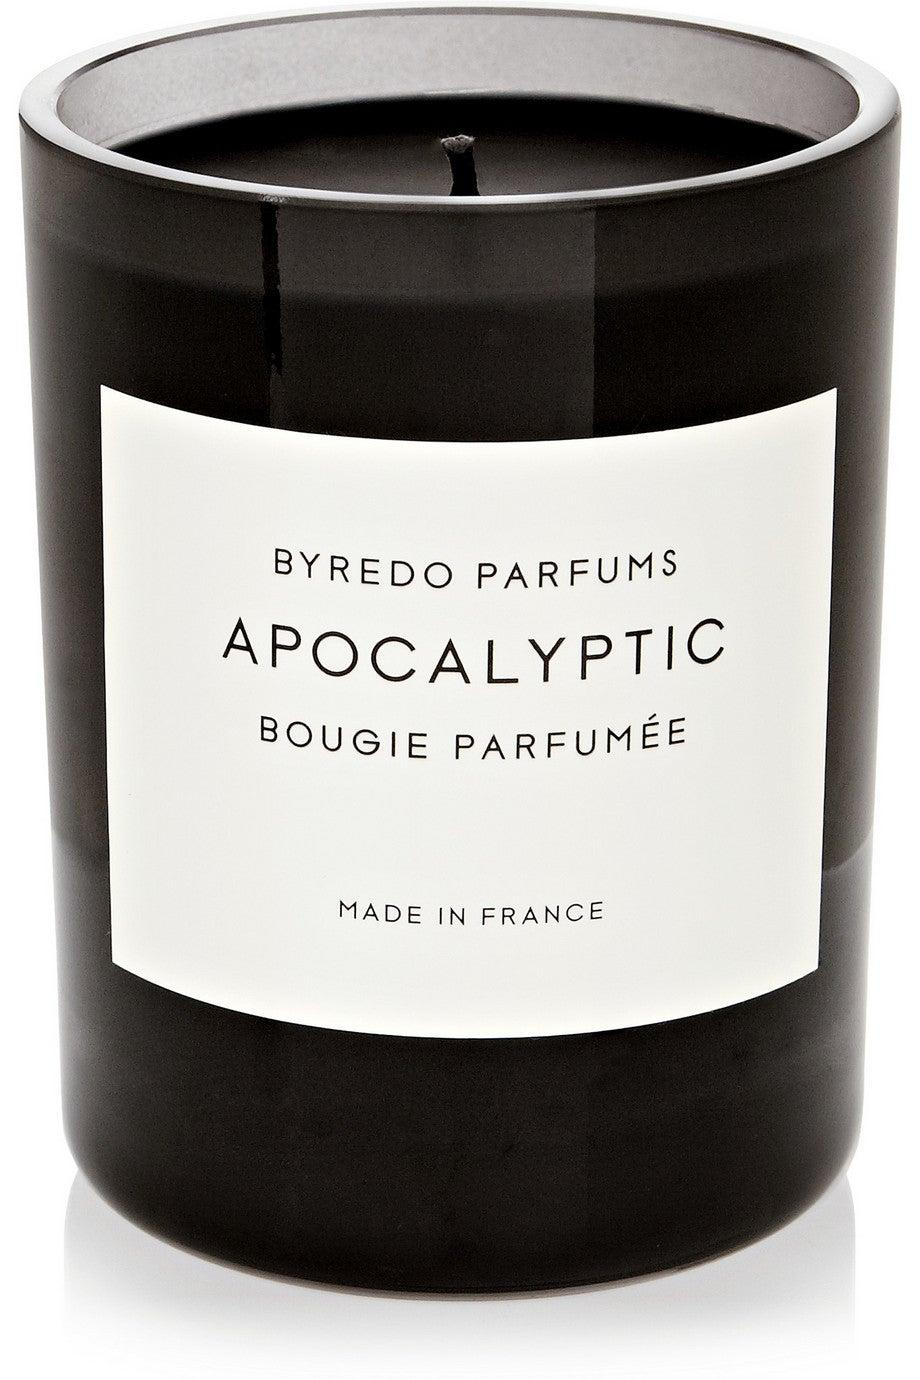 "<h3><a href=""https://www.net-a-porter.com/us/en/product/577972"" rel=""nofollow noopener"" target=""_blank"" data-ylk=""slk:Byredo Apocalyptic Candle"" class=""link rapid-noclick-resp"">Byredo Apocalyptic Candle</a></h3><br>Handmade in France, this luxury candle infuses the enticing scents of fire, iron, black raspberry, wood, and papyrus — resulting in an aroma that one reviewer describes as, ""one of those fragrances that you come back and keep sniffing...This smells like the woods and a campfire but also it smells high end - maybe it is what a rich person would smell like if they went camping - in any event it is woody, smokey, fresh and earthy all at the same time...you must smell in person, it's like nothing else.""<br><br><br><strong>Byredo</strong> Apocalyptic Scented Candle, $, available at <a href=""https://go.skimresources.com/?id=30283X879131&url=https%3A%2F%2Fwww.net-a-porter.com%2Fus%2Fen%2Fproduct%2F577972"" rel=""nofollow noopener"" target=""_blank"" data-ylk=""slk:Net-A-Porter"" class=""link rapid-noclick-resp"">Net-A-Porter</a>"